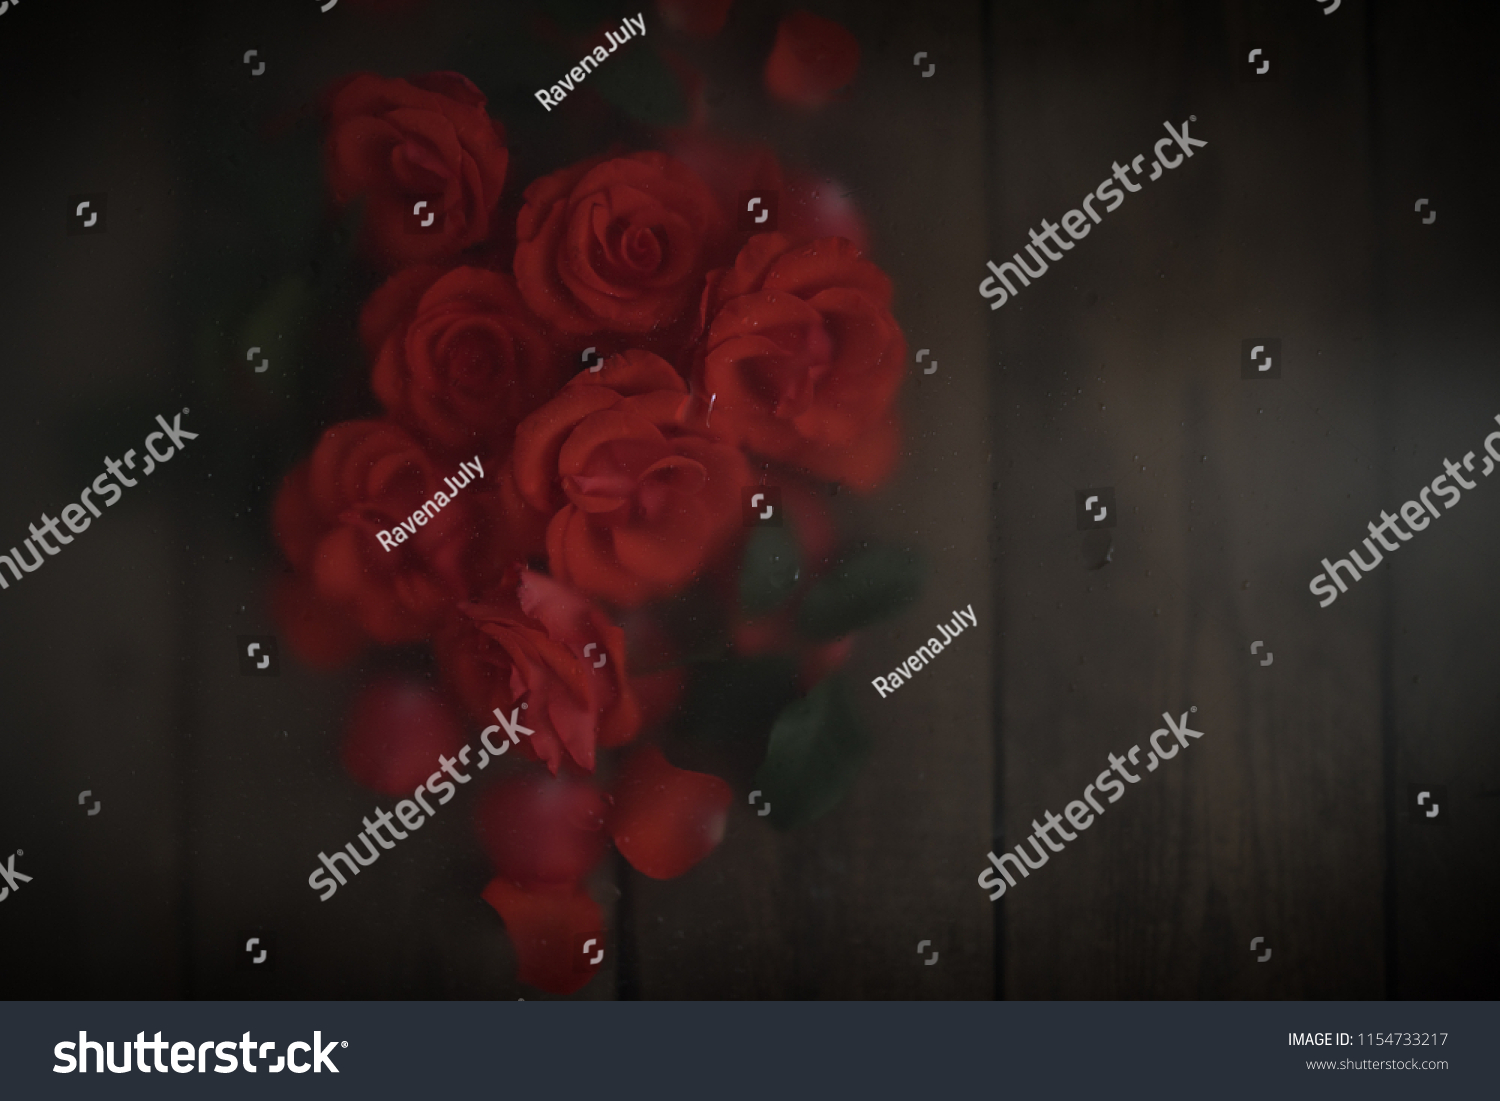 Red roses on a wooden table flat lay, unfocused background. Copy space. Blur